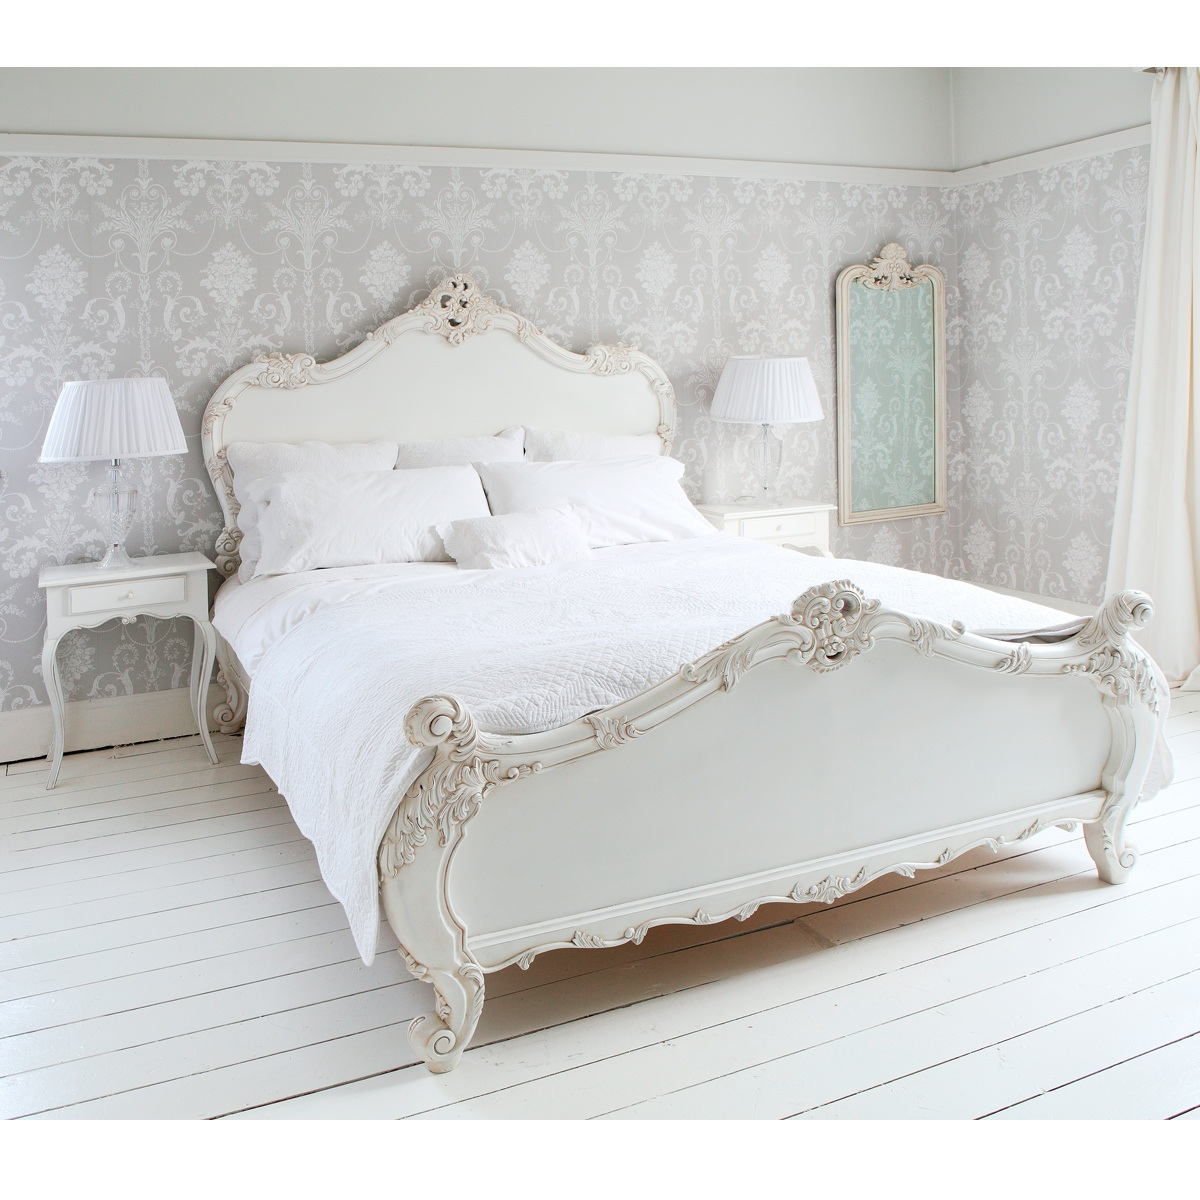 Remarkable White French Bed 1200 x 1200 · 479 kB · jpeg